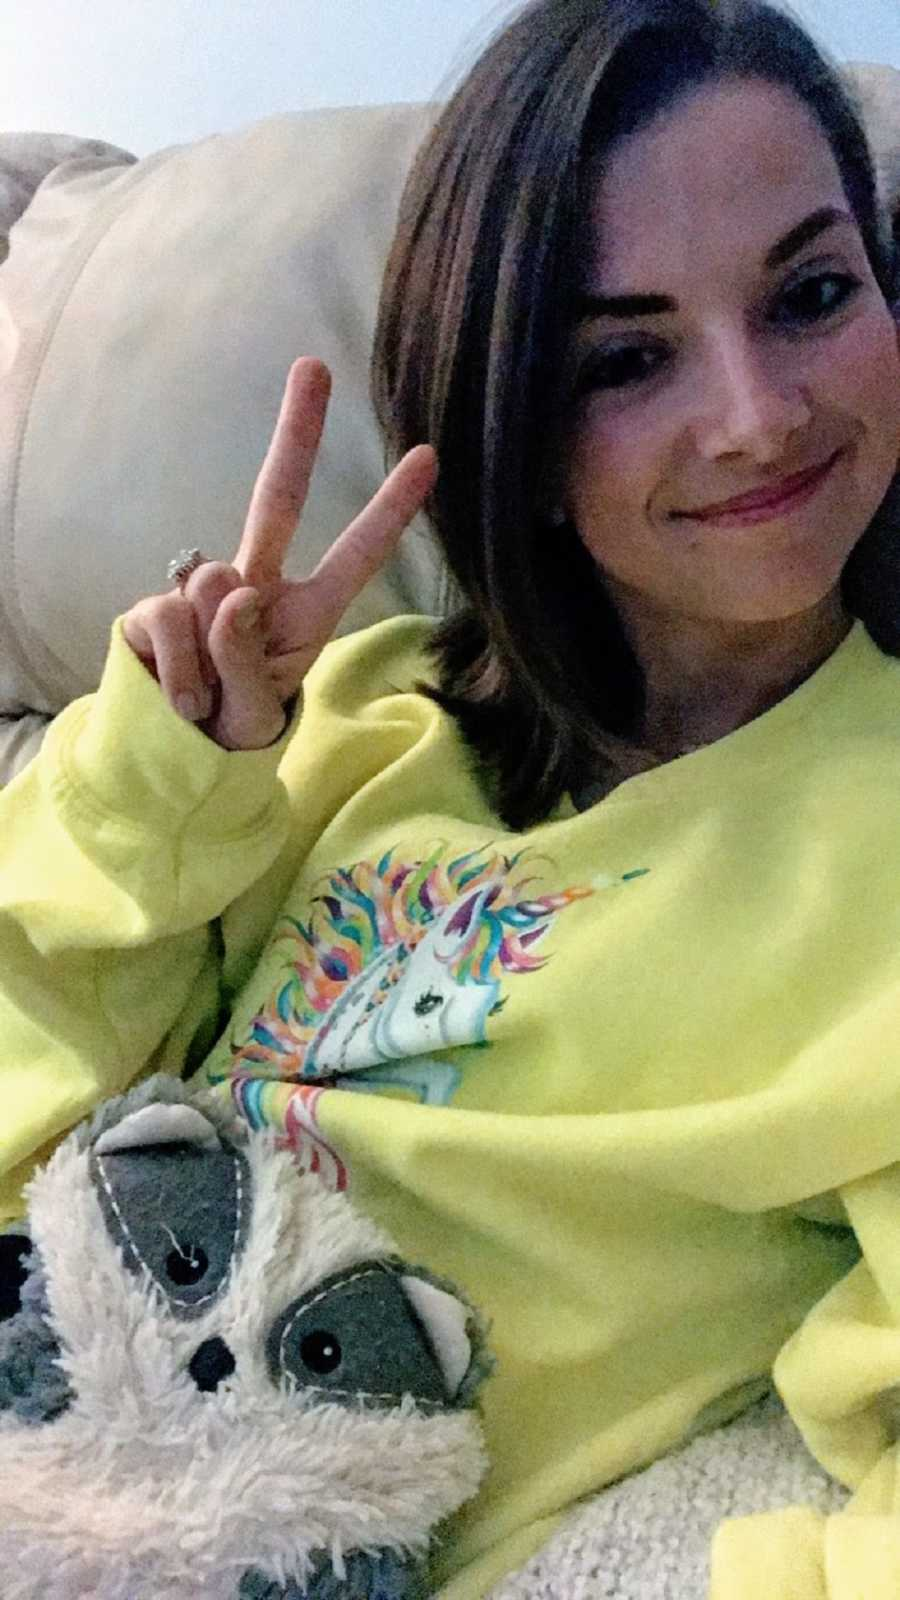 Recovering woman gives peace sign